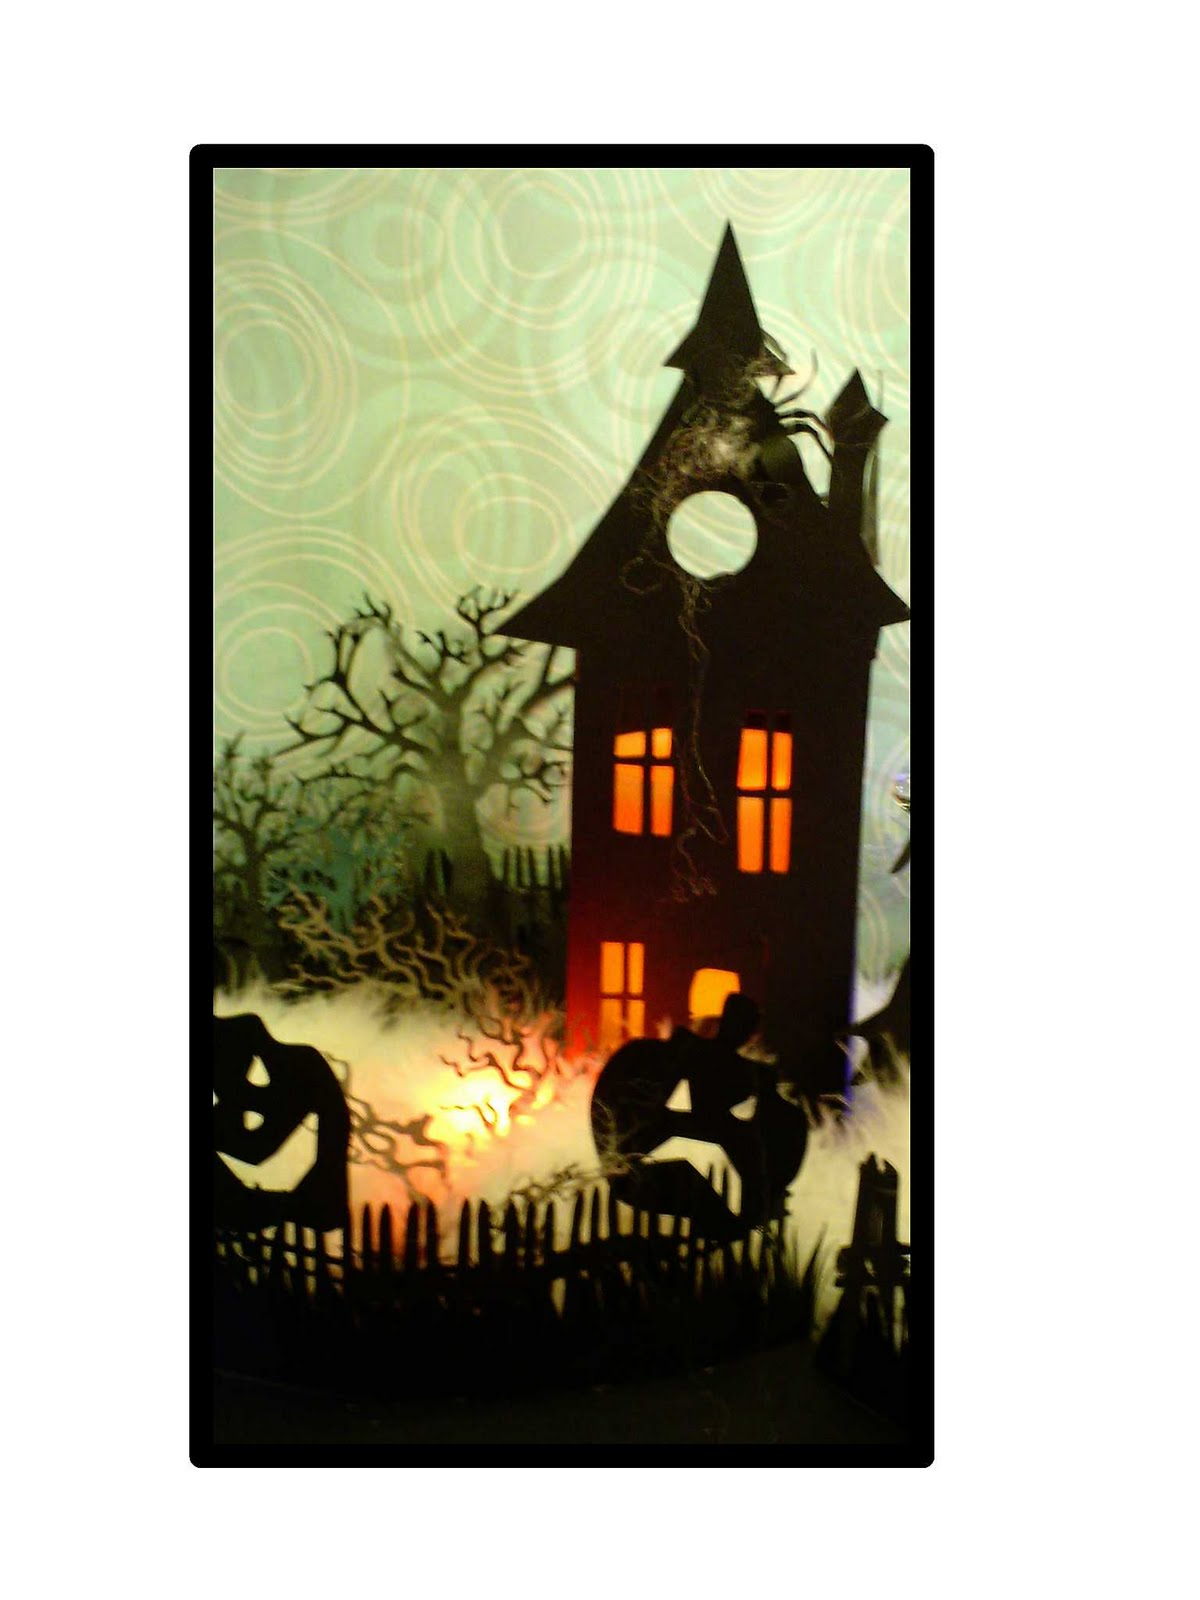 essay on autobiography of a haunted house